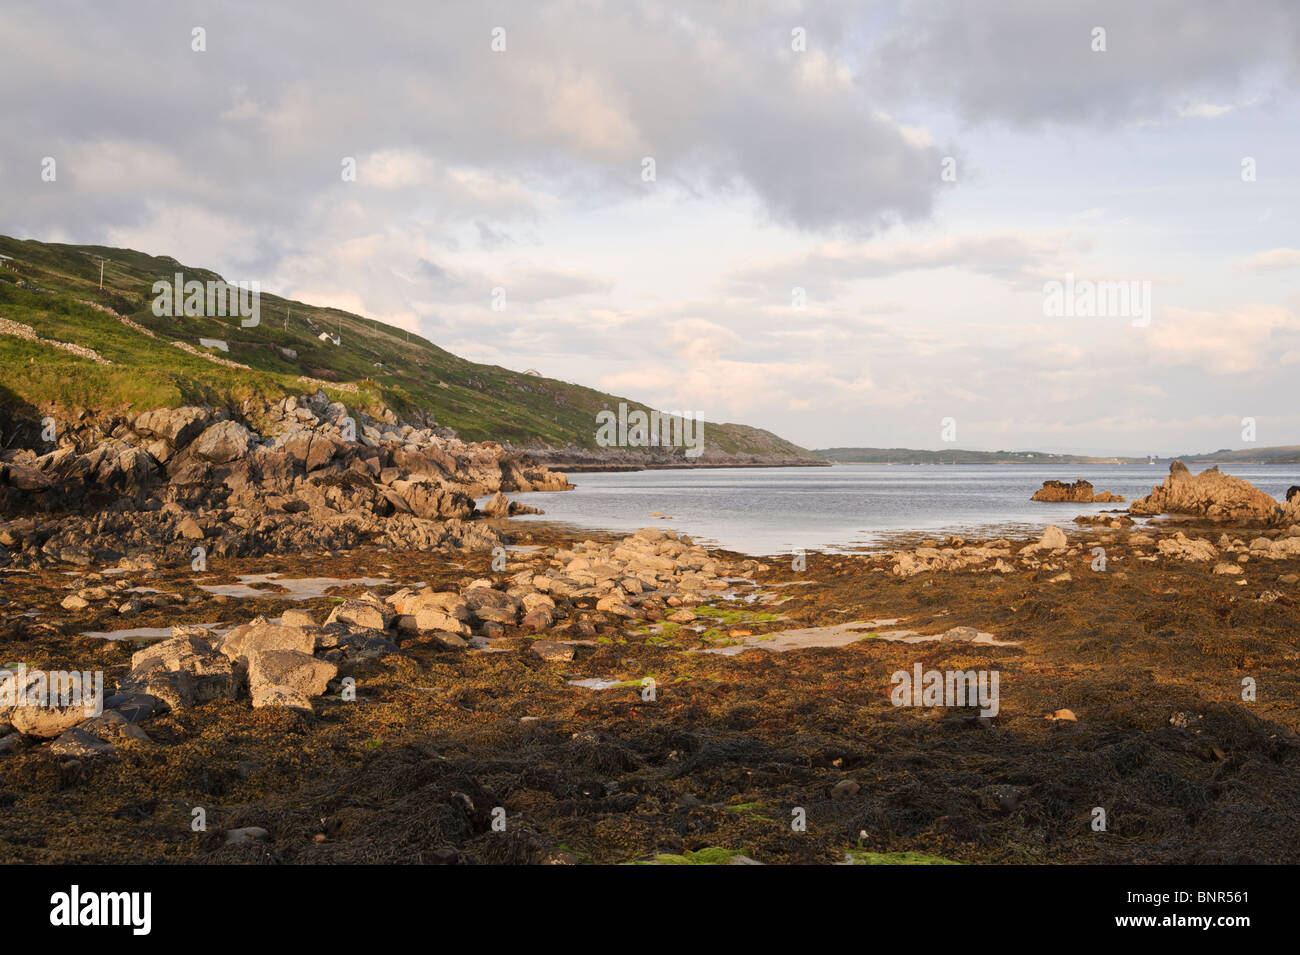 Clifden Bay Connemara County Galway Republic of Ireland - Stock Image